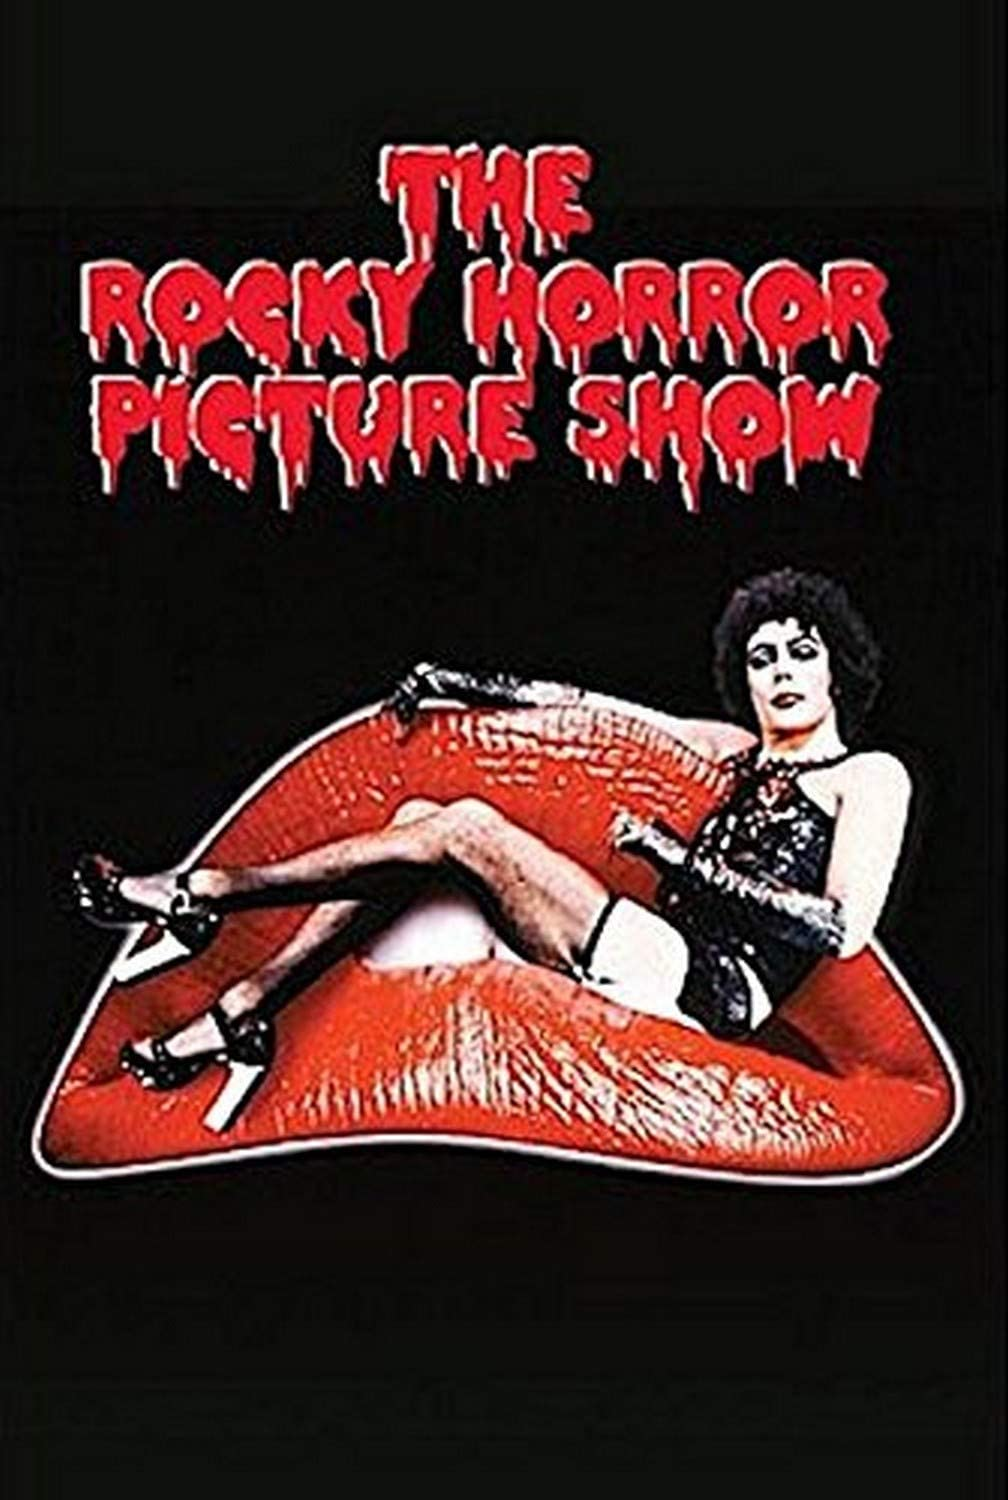 Buyartforless Tim Curry Lips The Rocky Horror Picture Show 1975 36x24 Movie Dressed in Drag Poster, Print, Decorative Accent, Wall Art, Multi-Color